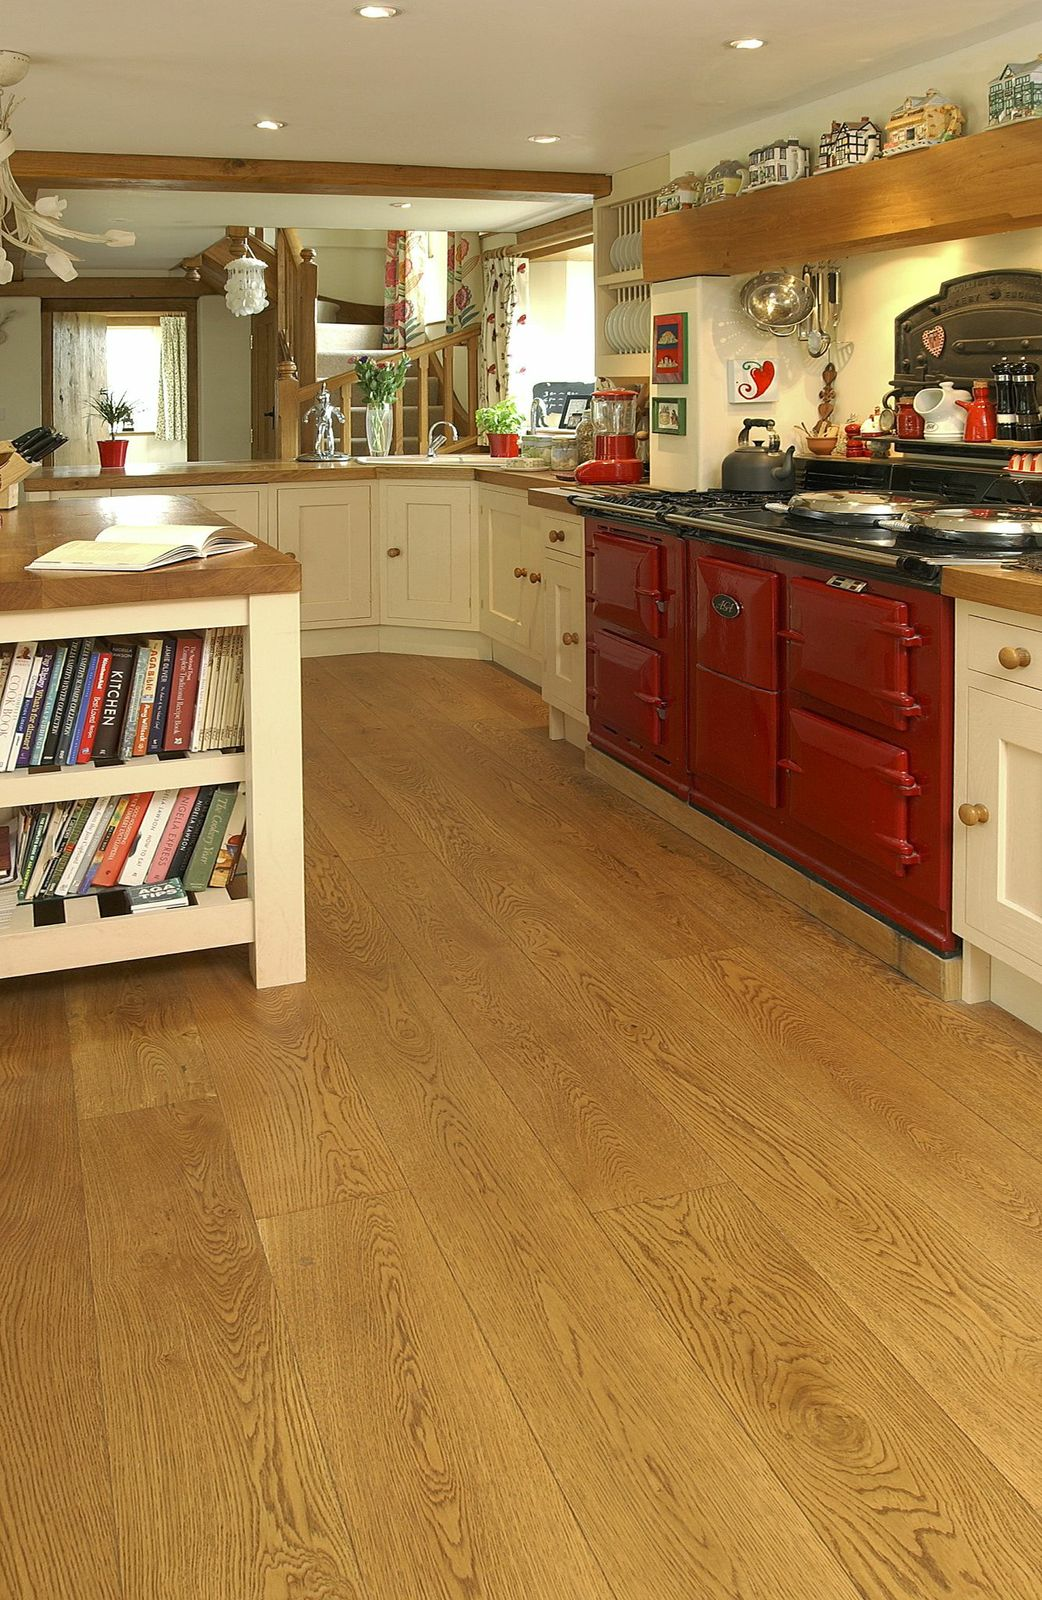 The london wood flooring co - The Natural Wood Floor Company London